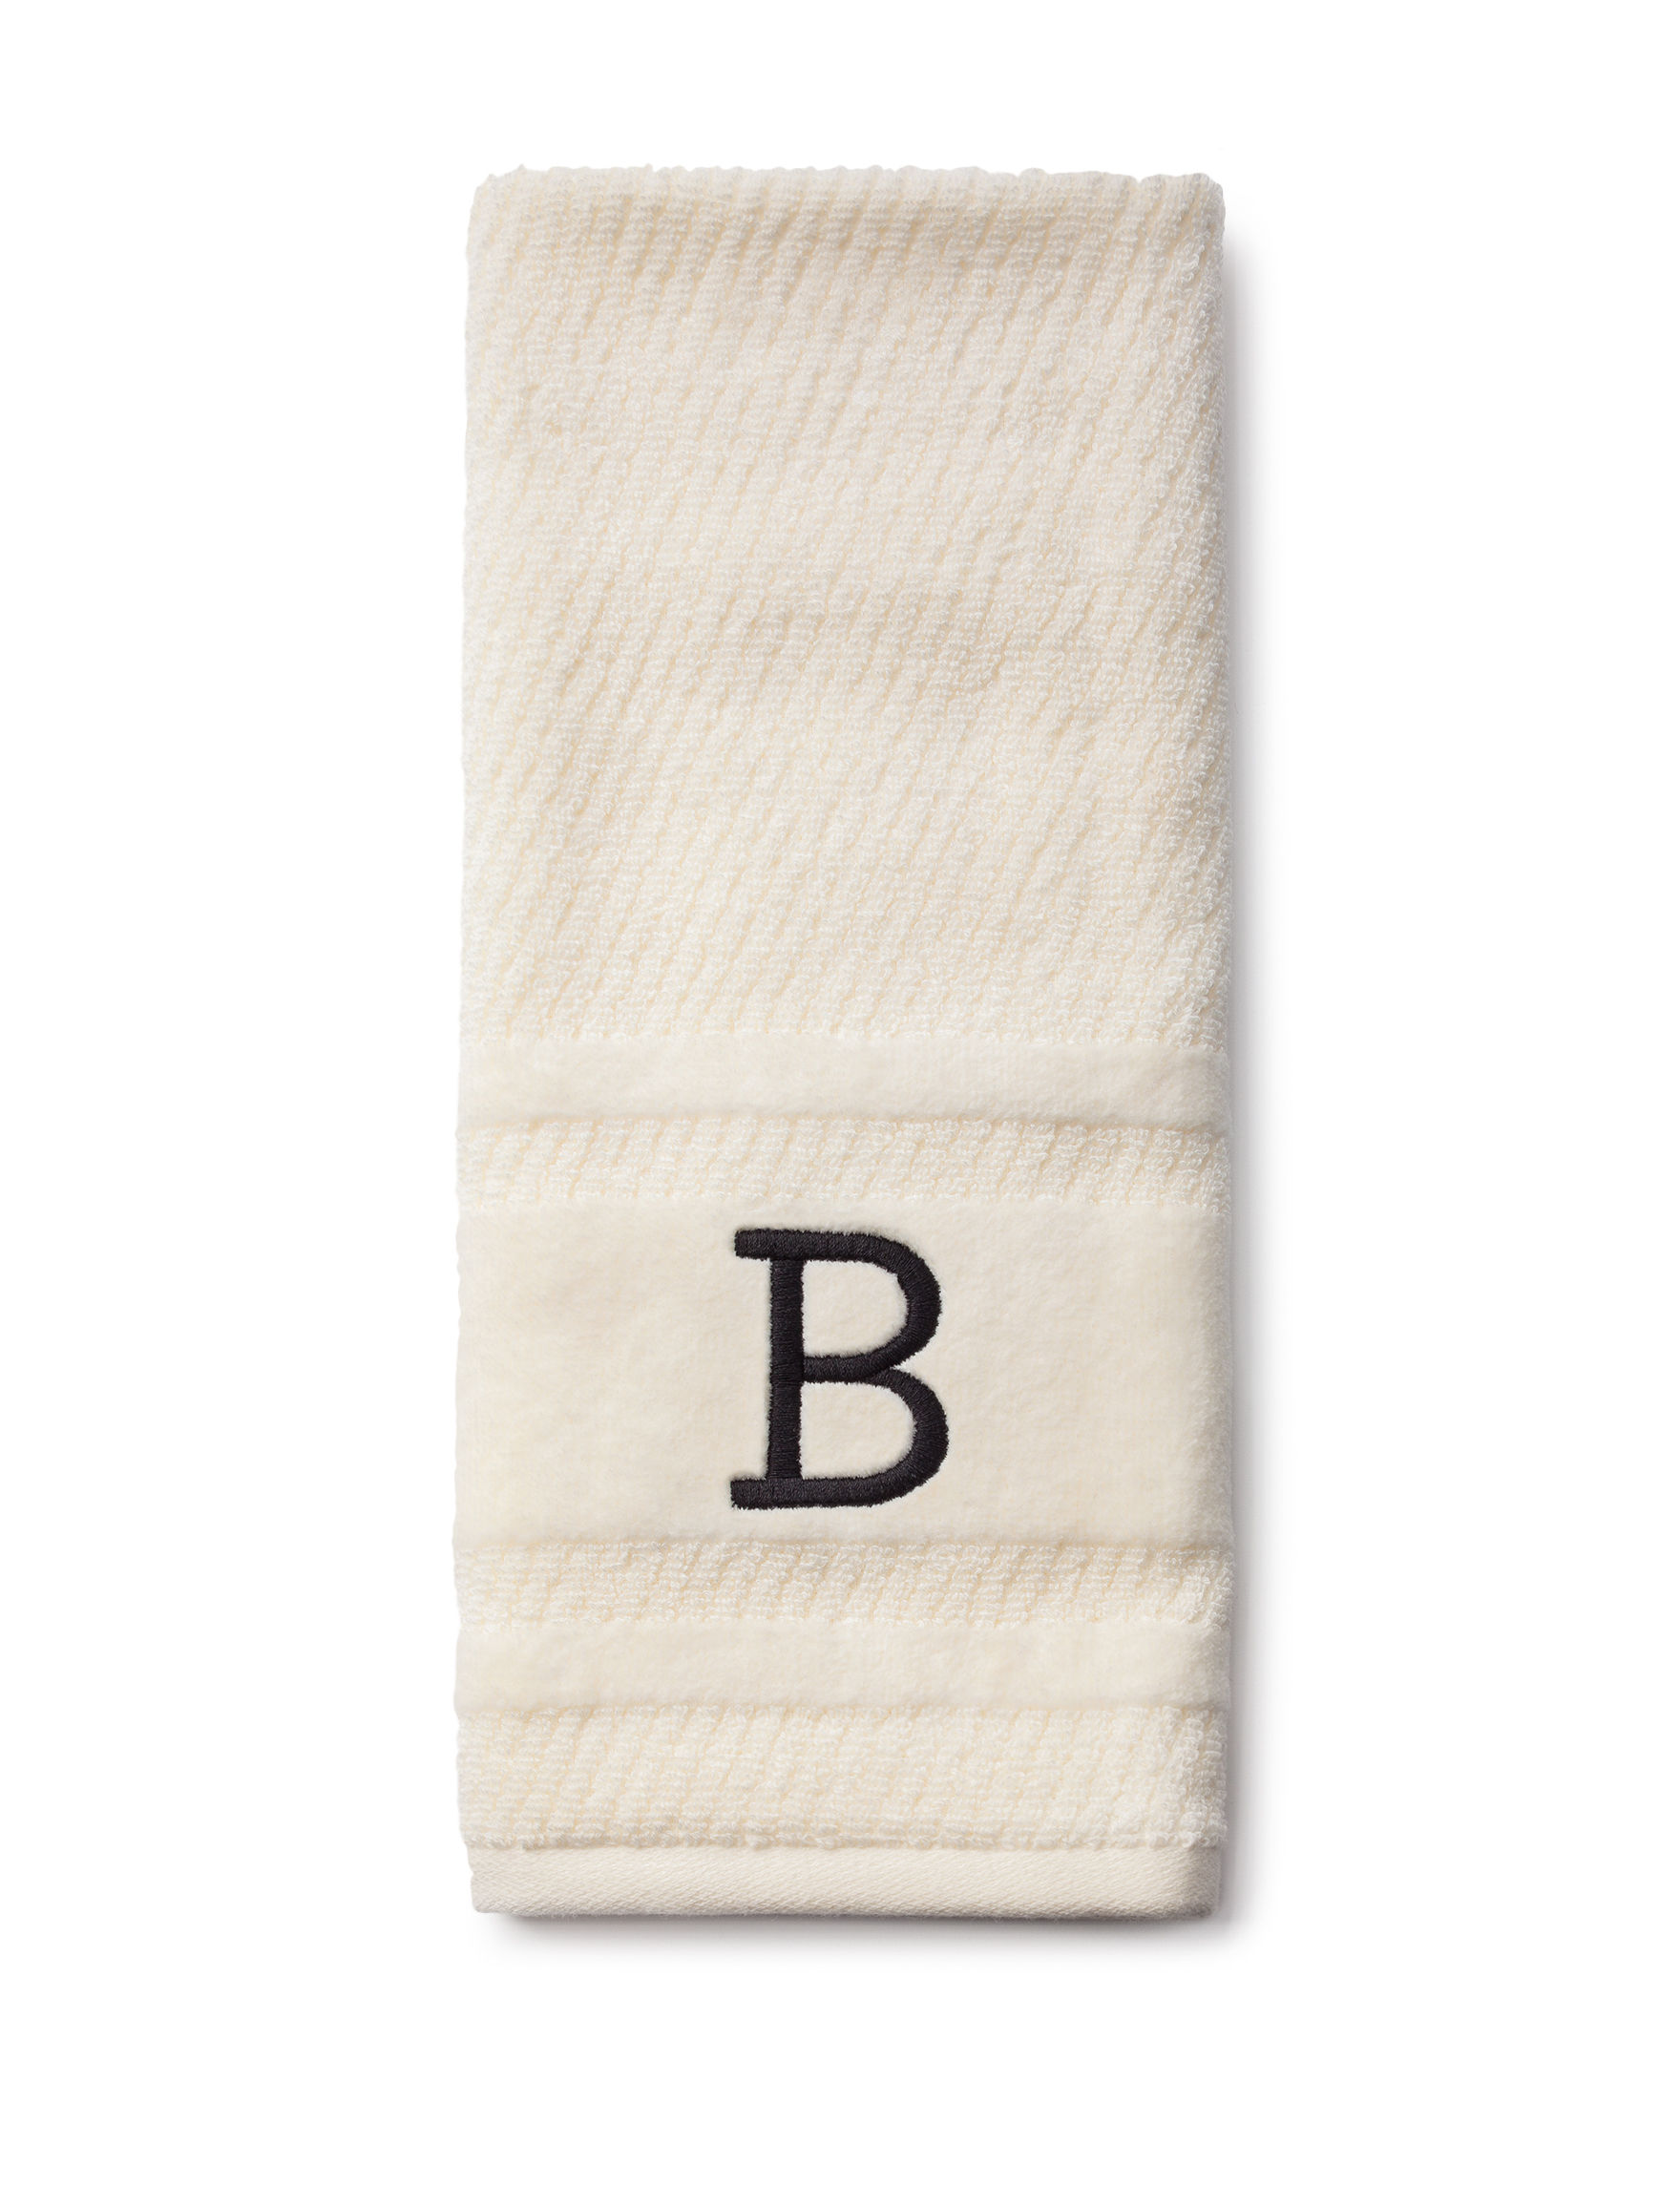 Peri Ivory Hand Towels Monogram Towels